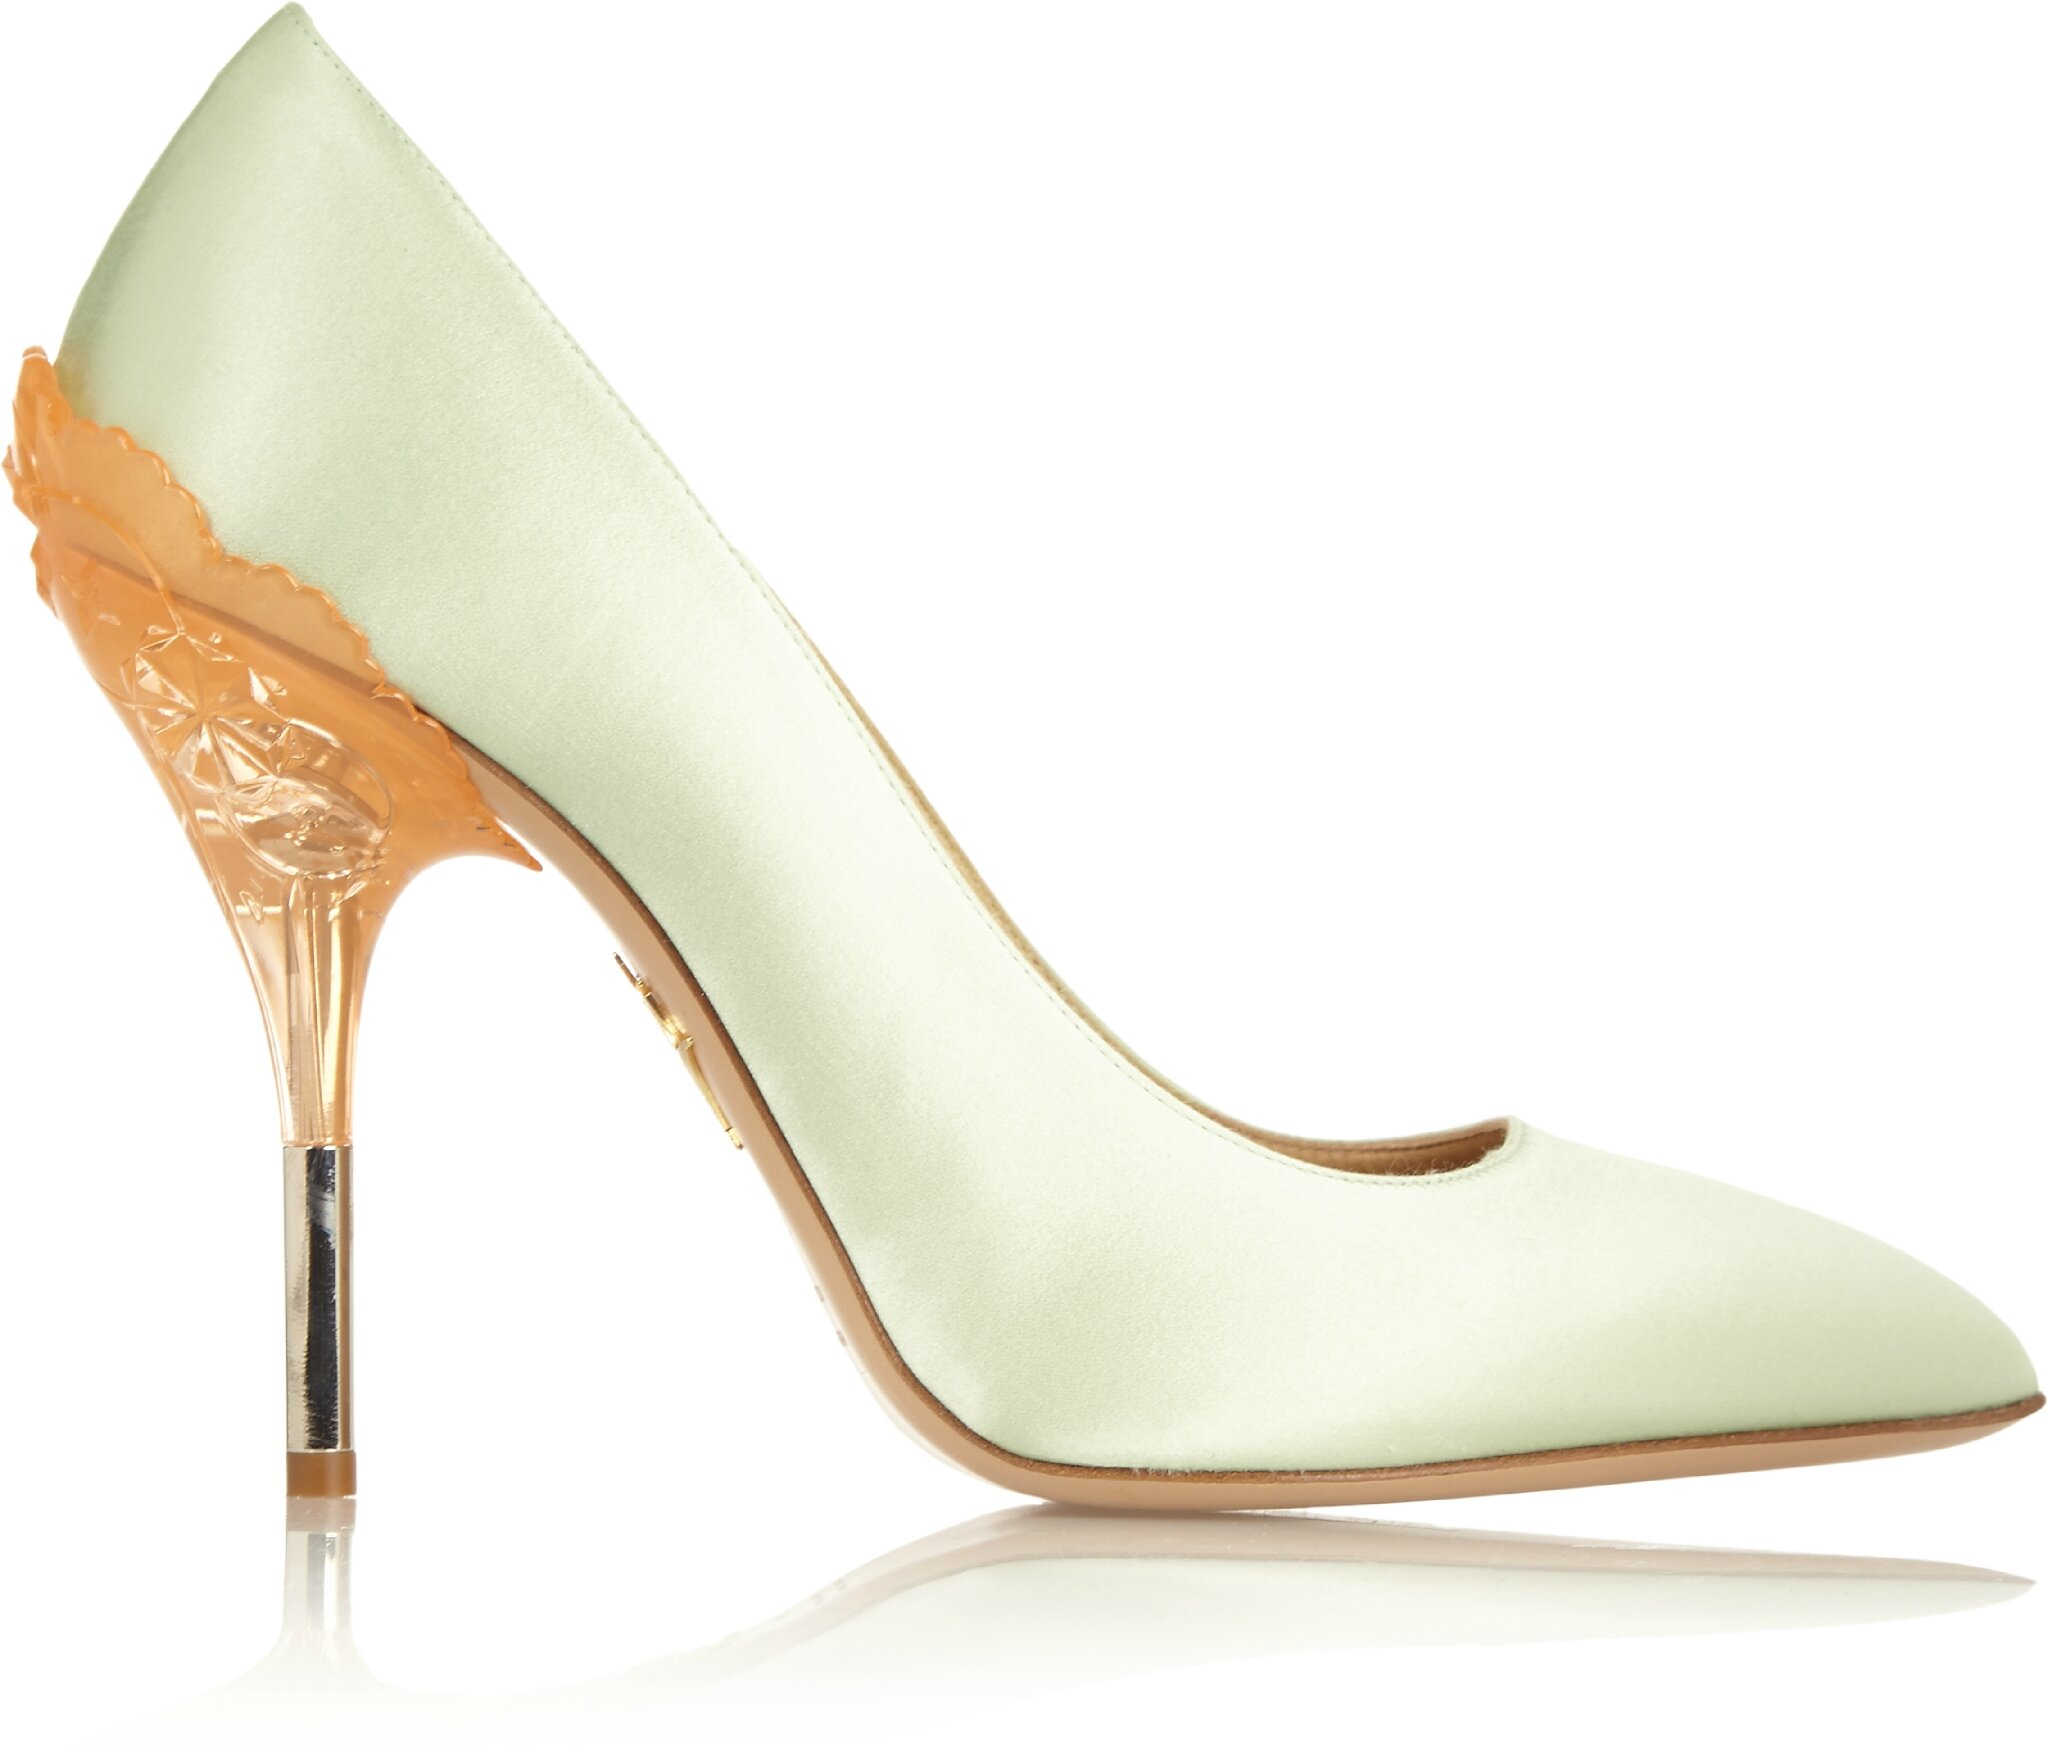 Charlotte Olympia sur THE OUTNET.COM